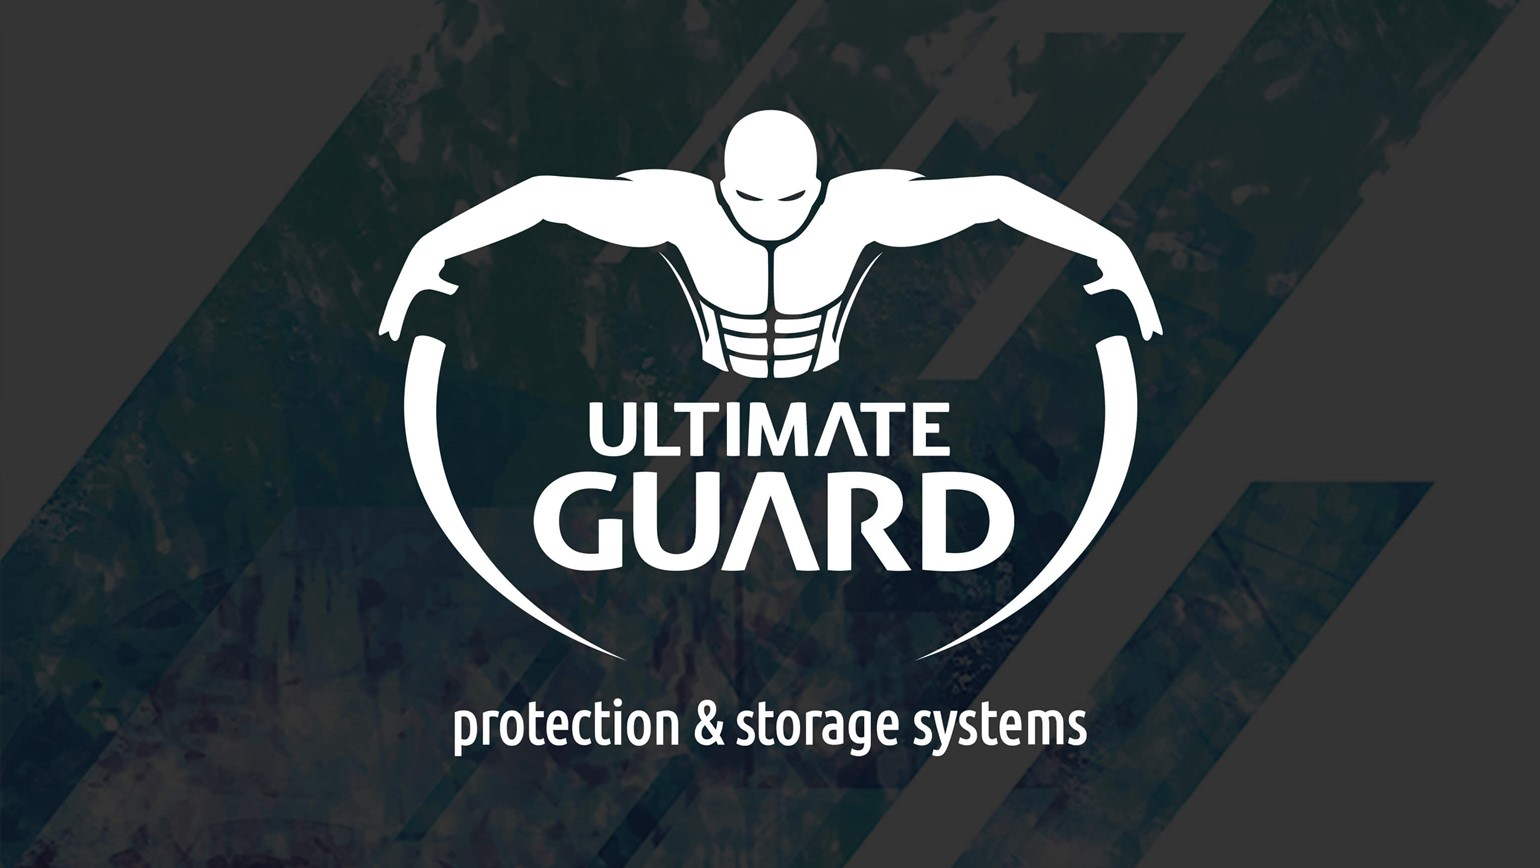 Ultimate Guard Products Available to List